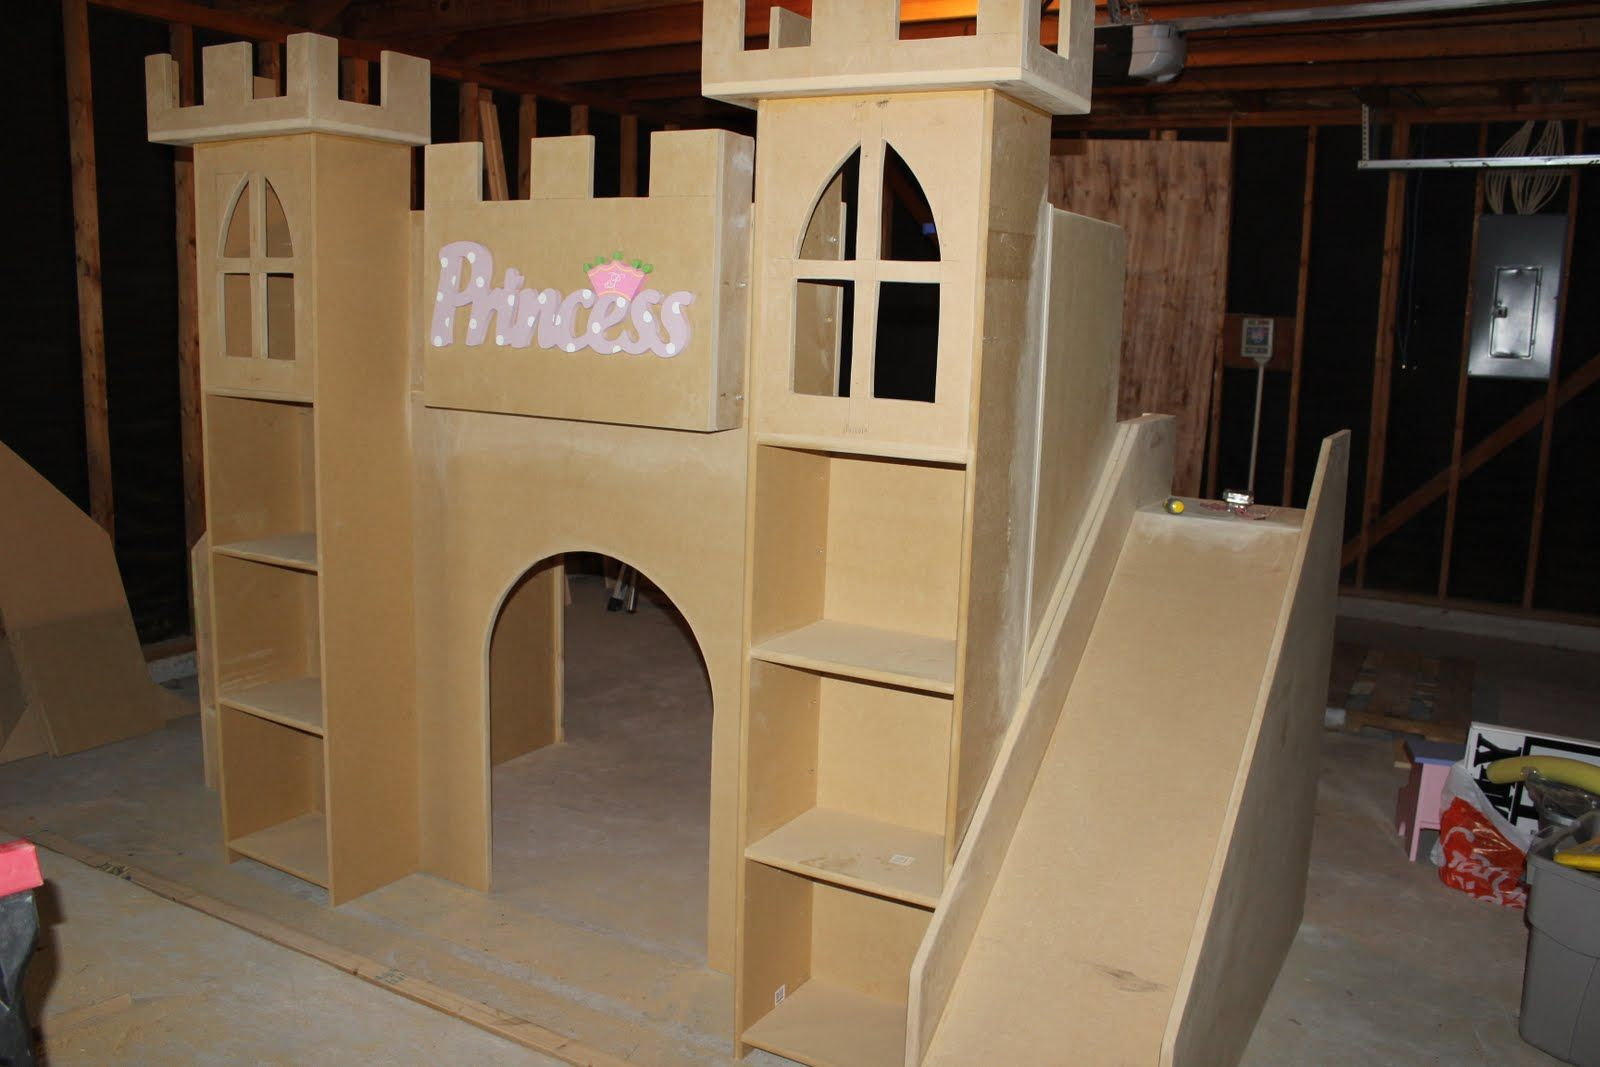 Princess castle bed decorating new house pinterest for Princess bed blueprints